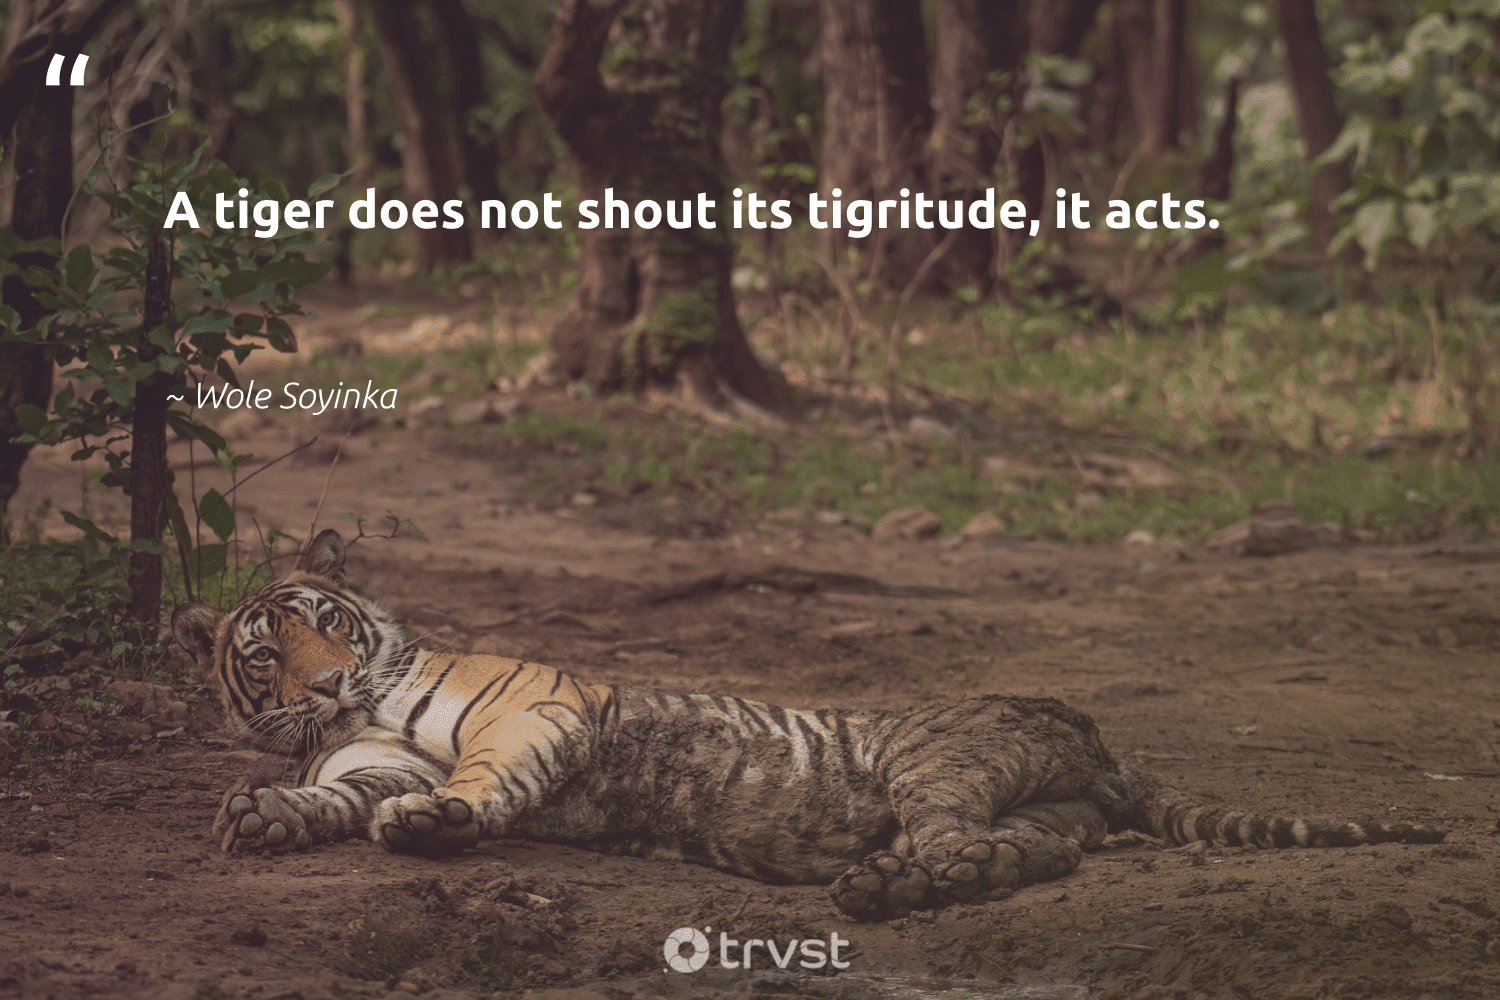 """A tiger does not shout its tigritude, it acts.""  - Wole Soyinka #trvst #quotes #tiger #biodiversity #socialimpact #tigers #socialchange #majesticwildlife #dogood #bigfive #gogreen #amazingworld"